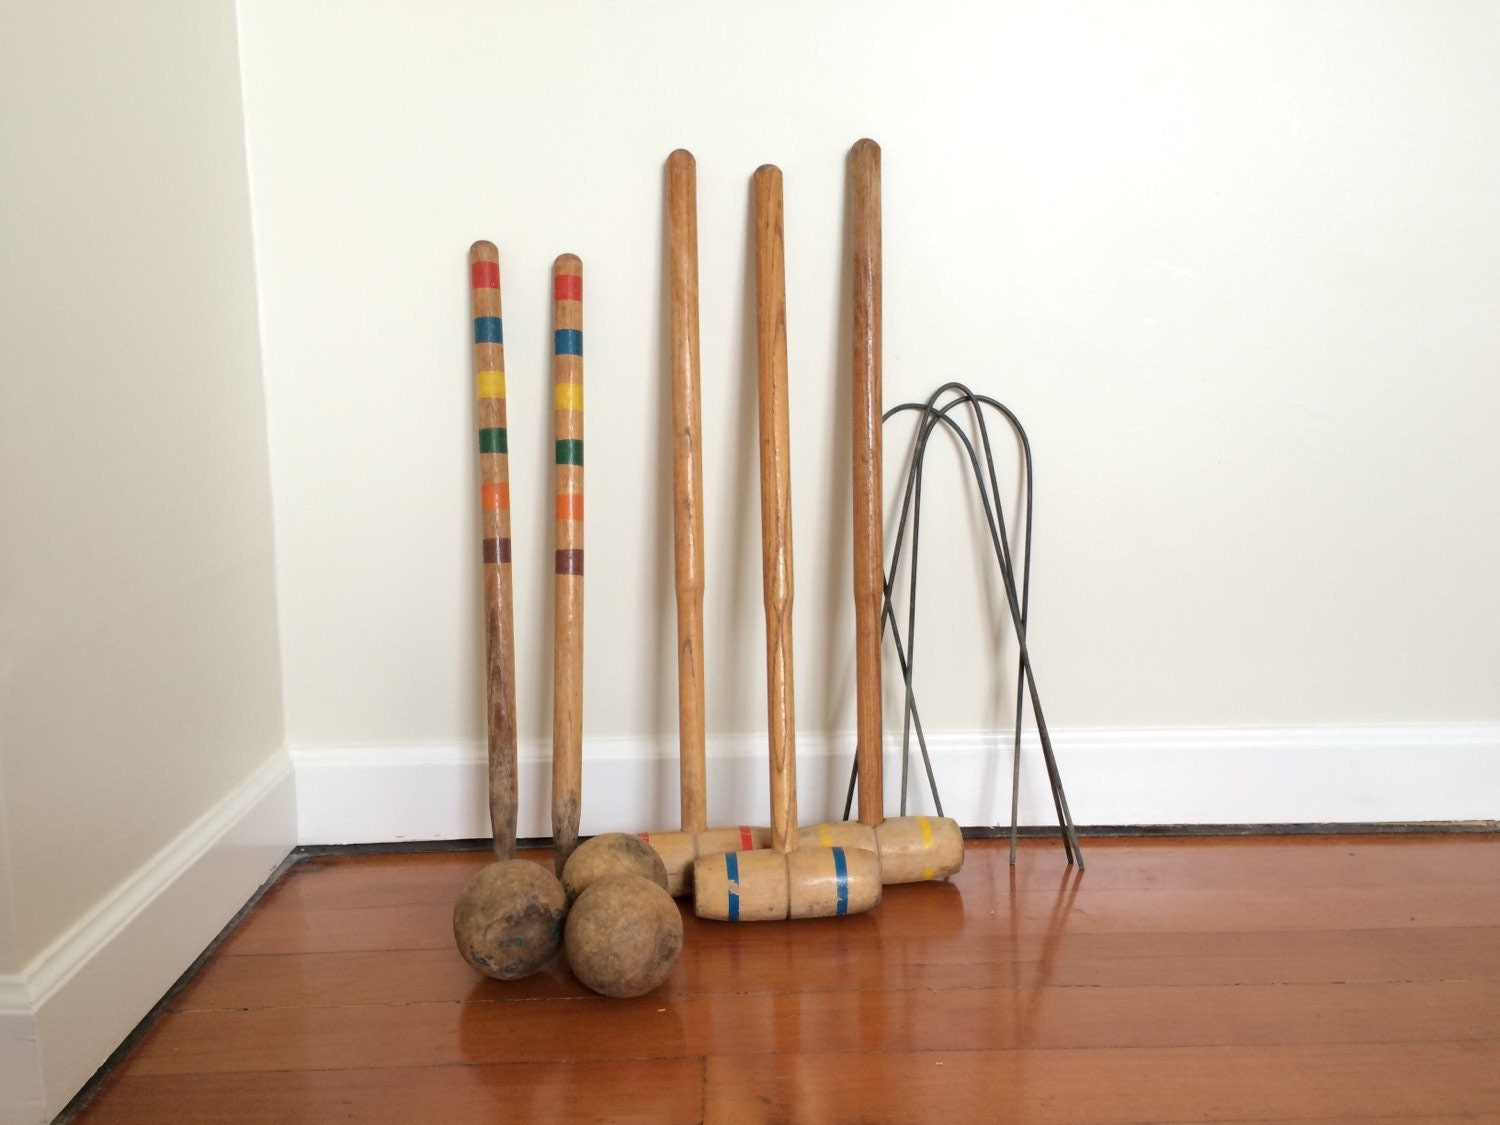 Vintage Wooden Croquet Set For Mid Century Garden Party